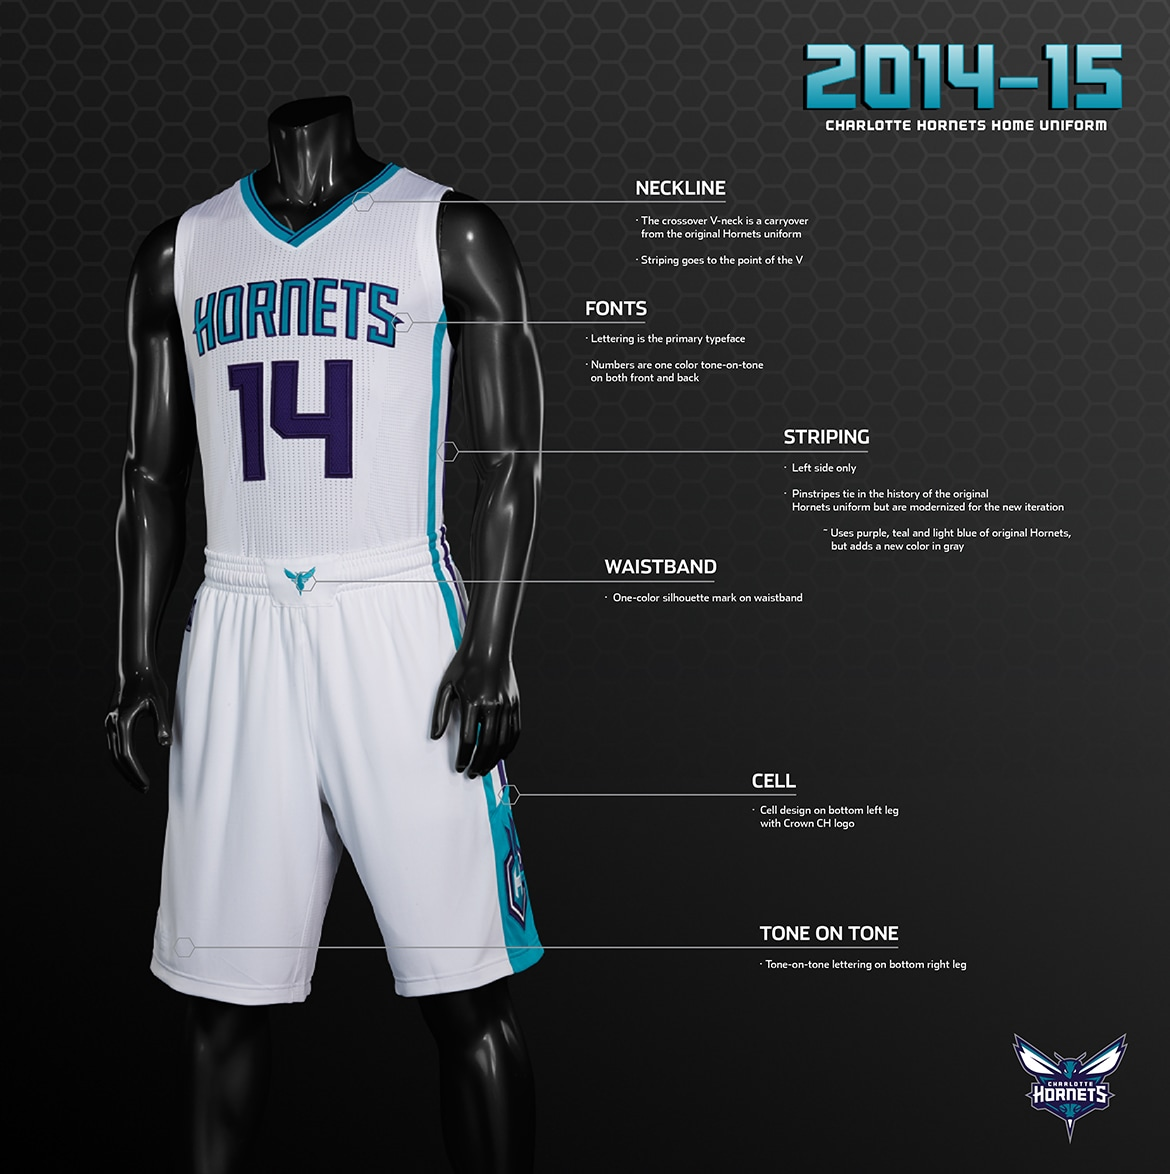 Home Uniform Breakdown